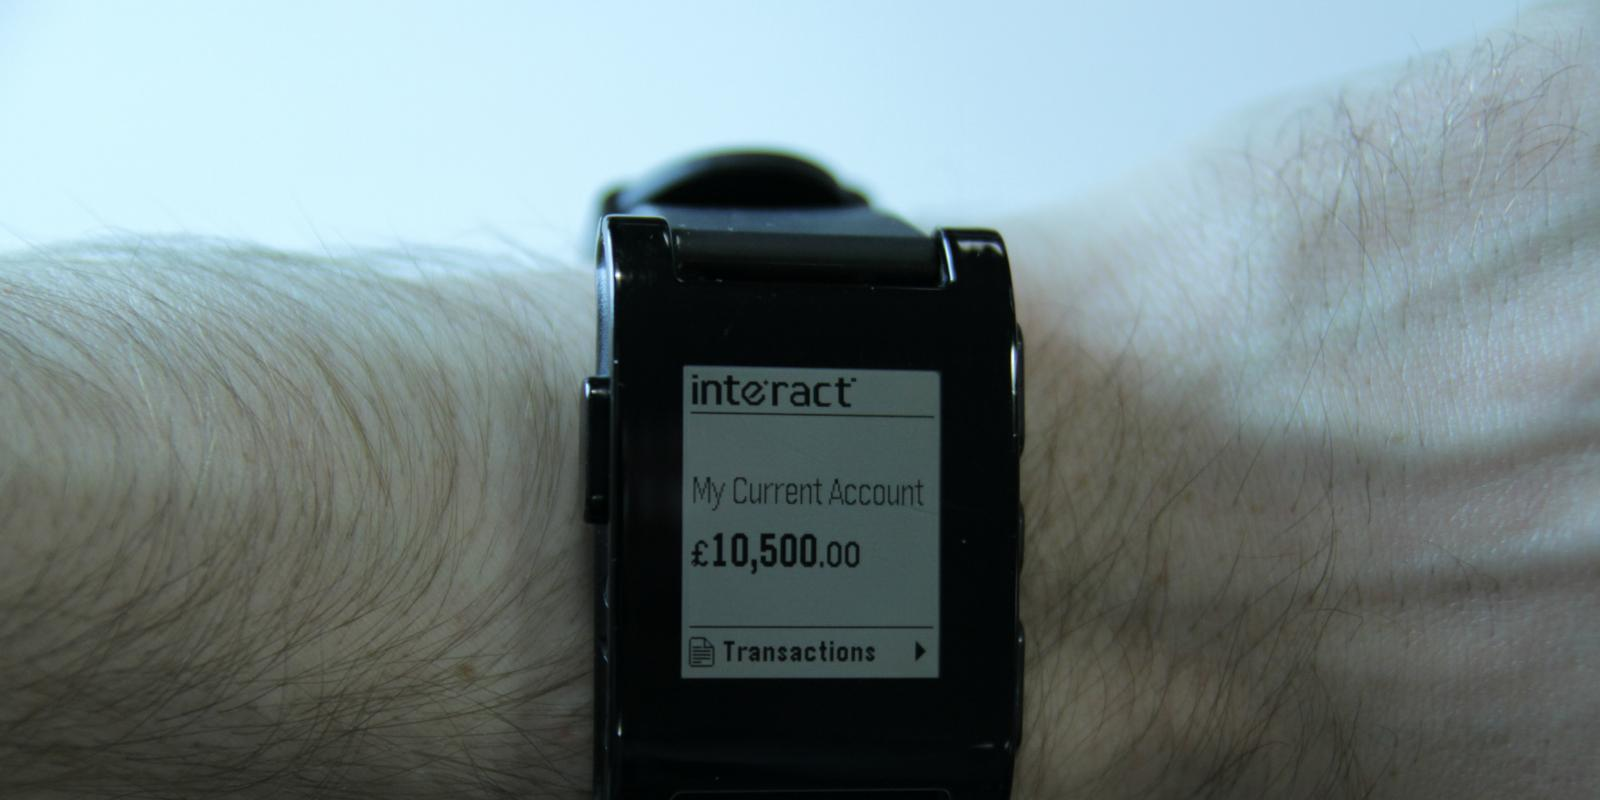 Pebble smartwatch gets banking app